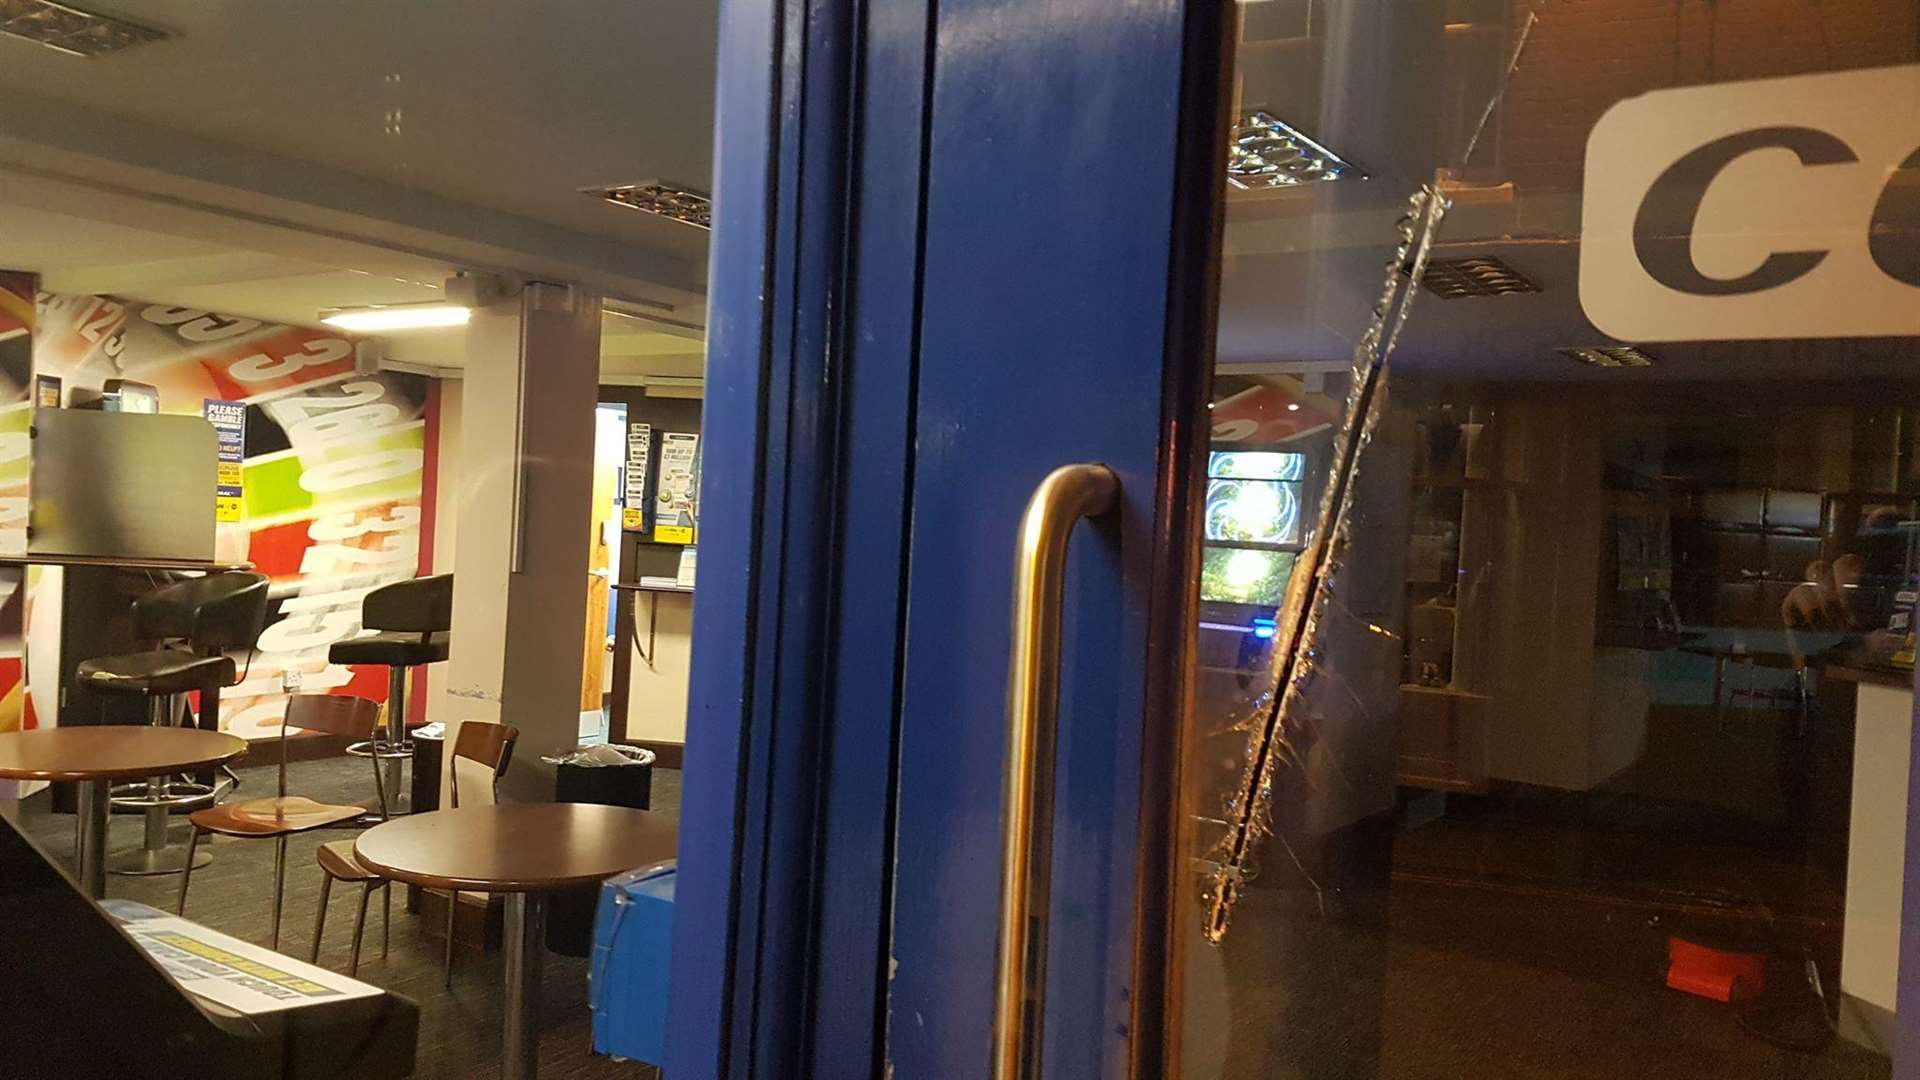 Damage caused to the window of the Coral bookmakers (4332844)